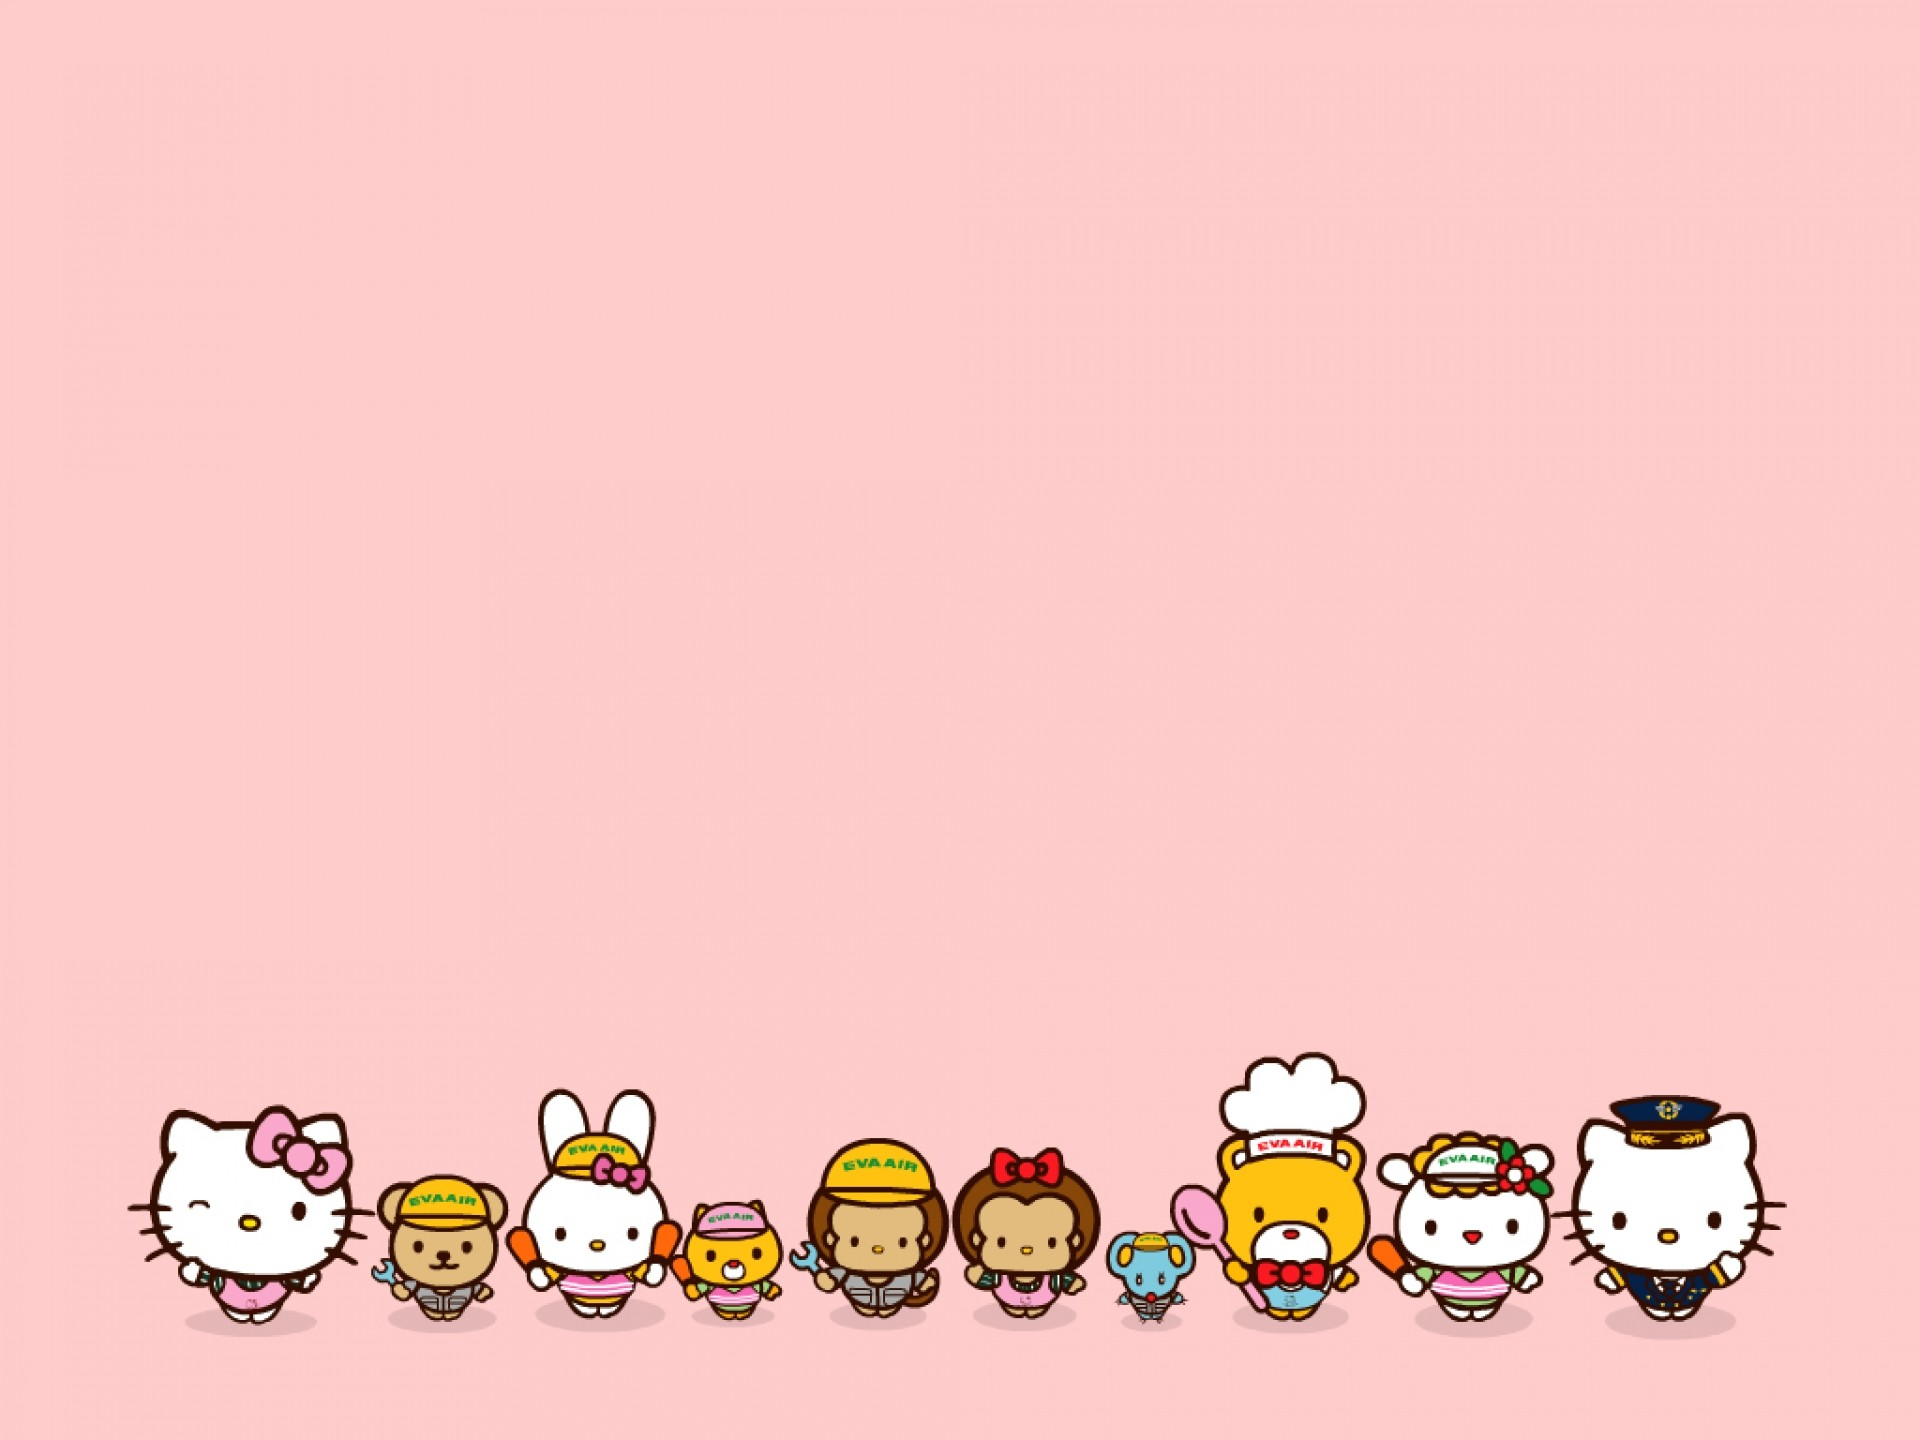 1920x1440 Hello Kitty Characters Backgrounds